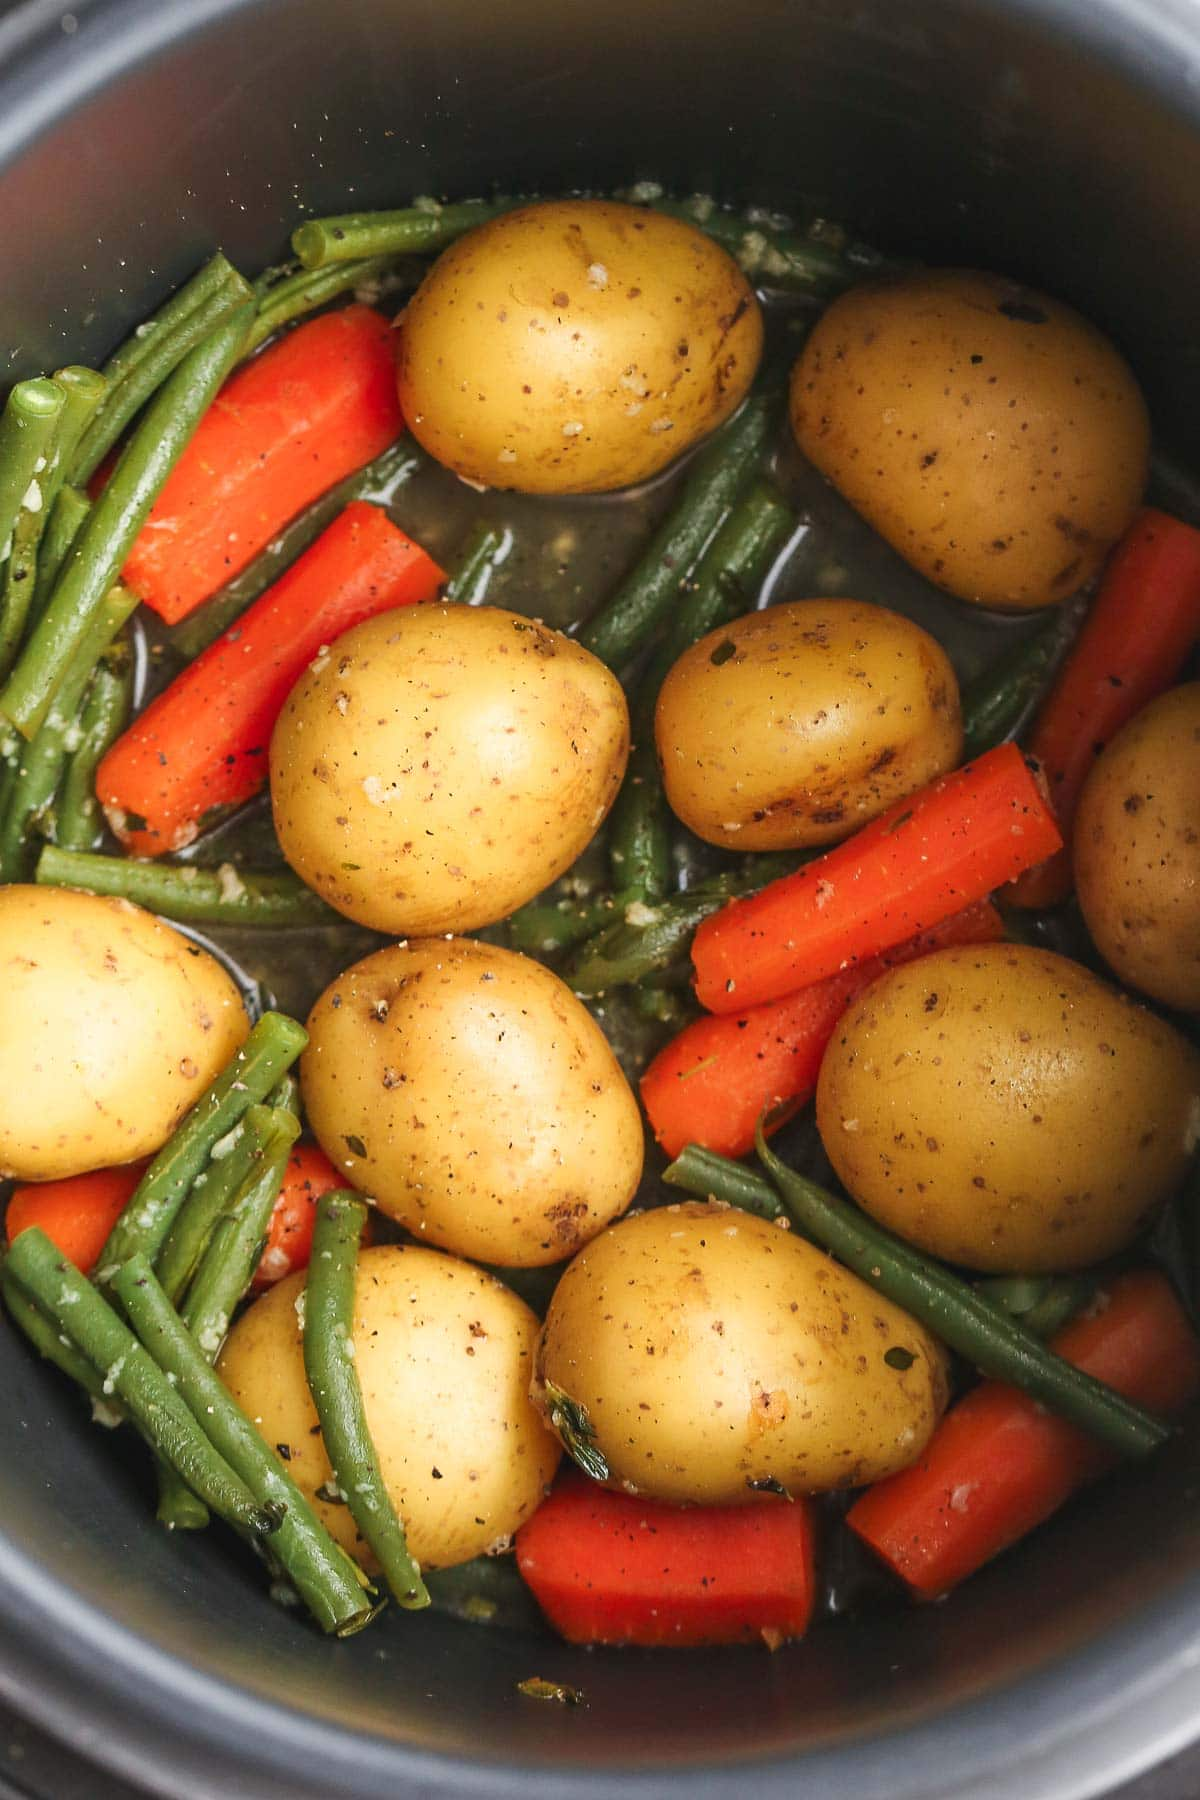 Instant Pot potatoes with carrot and green beans in the Instant Pot